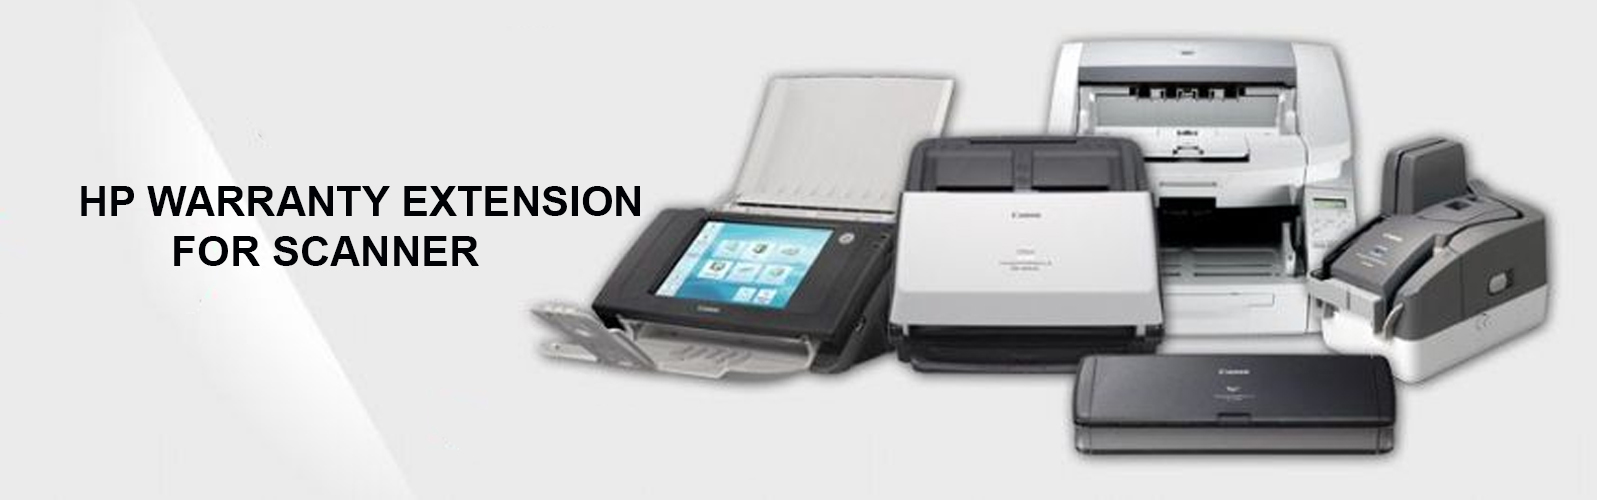 HP Scanner Warranty Extension Delhi